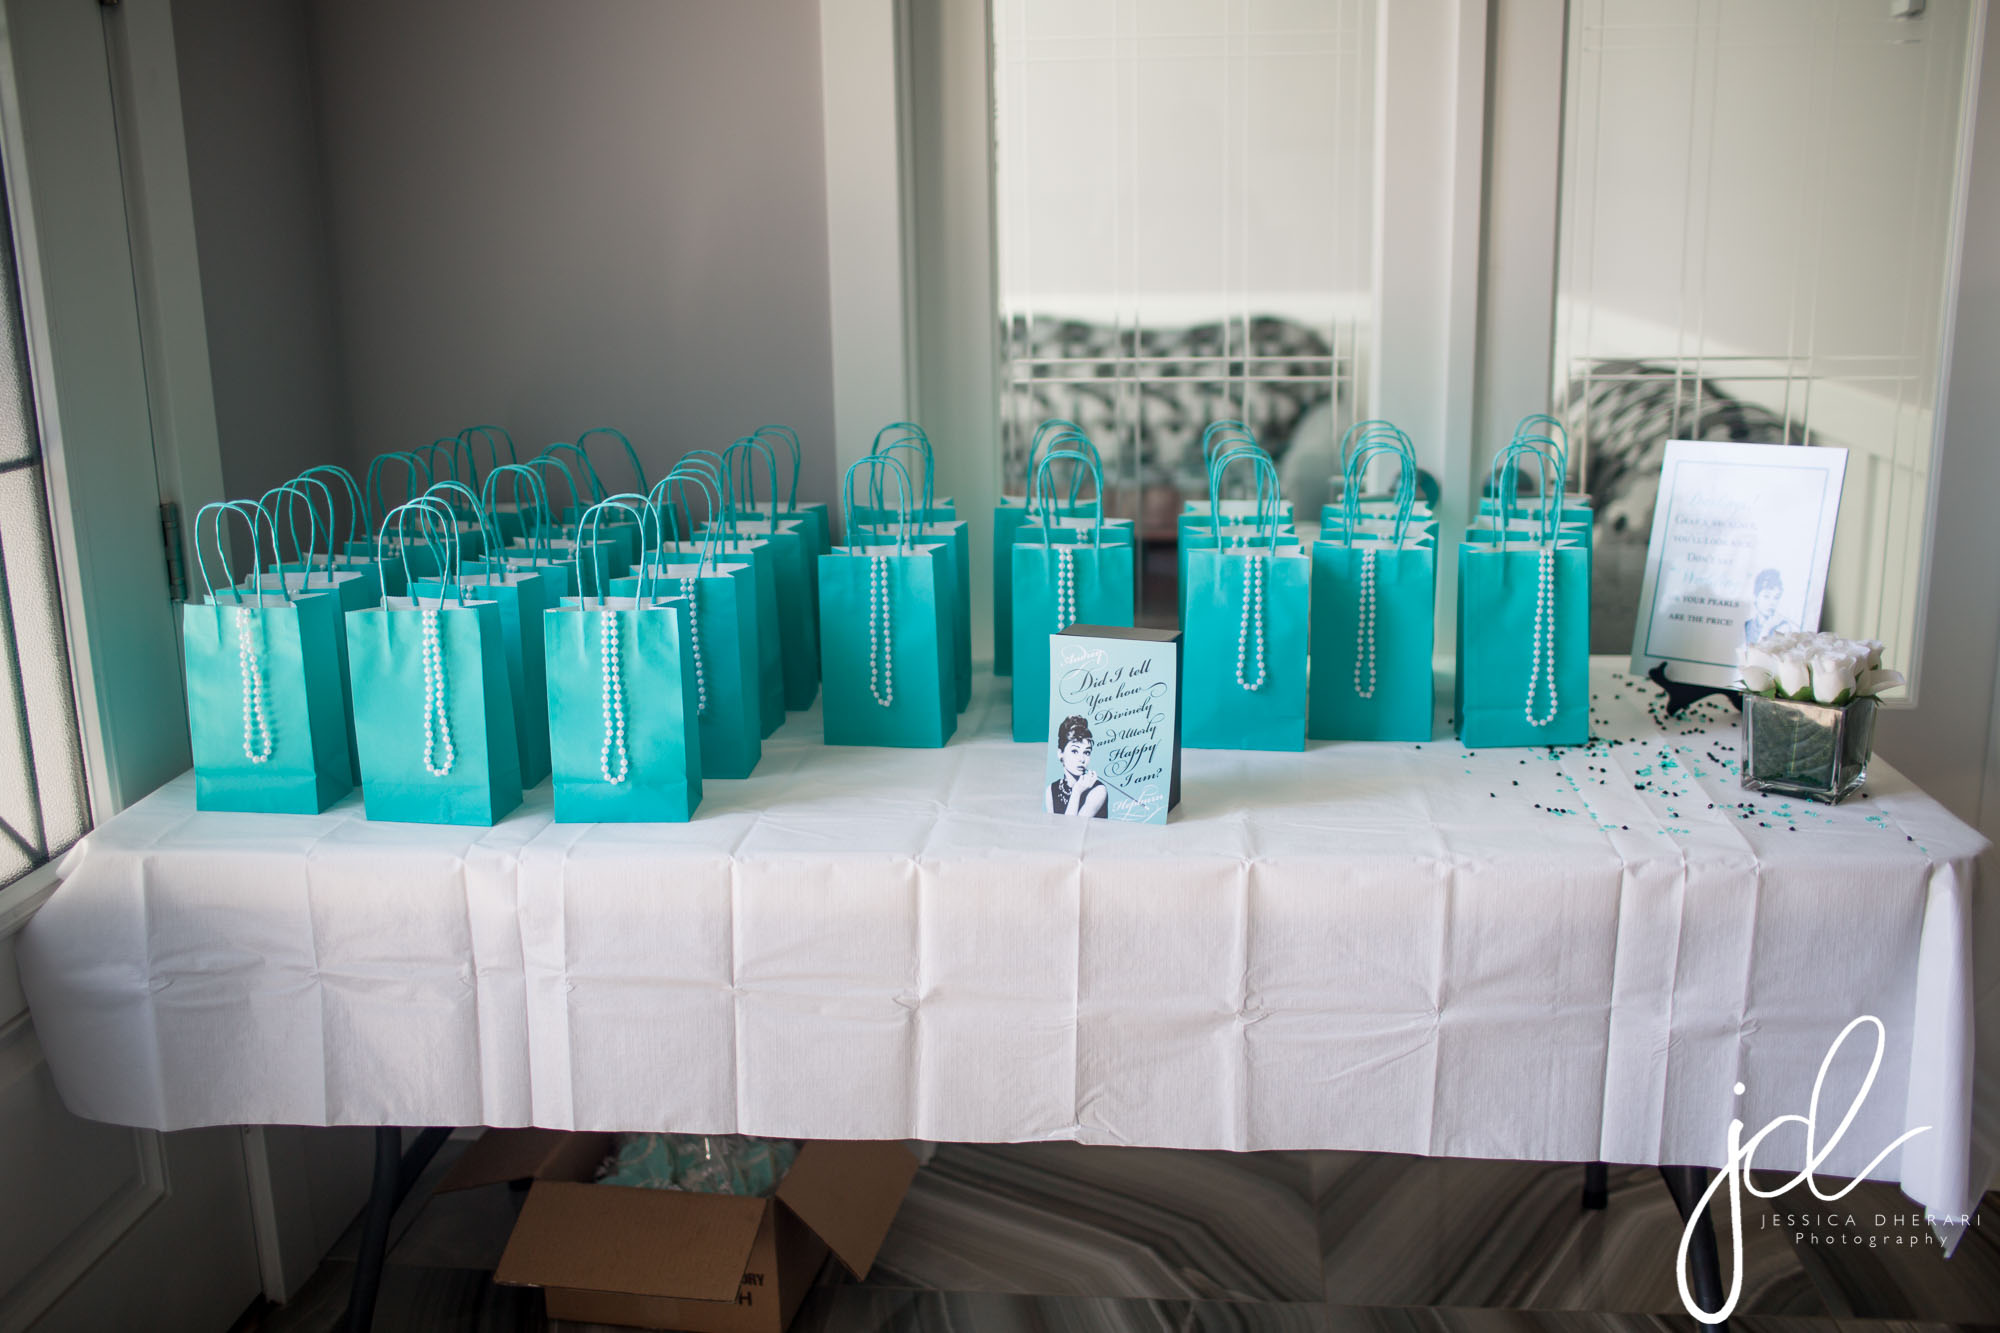 dfe35ad5e5c1c Kuljit's Bridal Shower || Surrey BC Bridal Shower Photographer ...